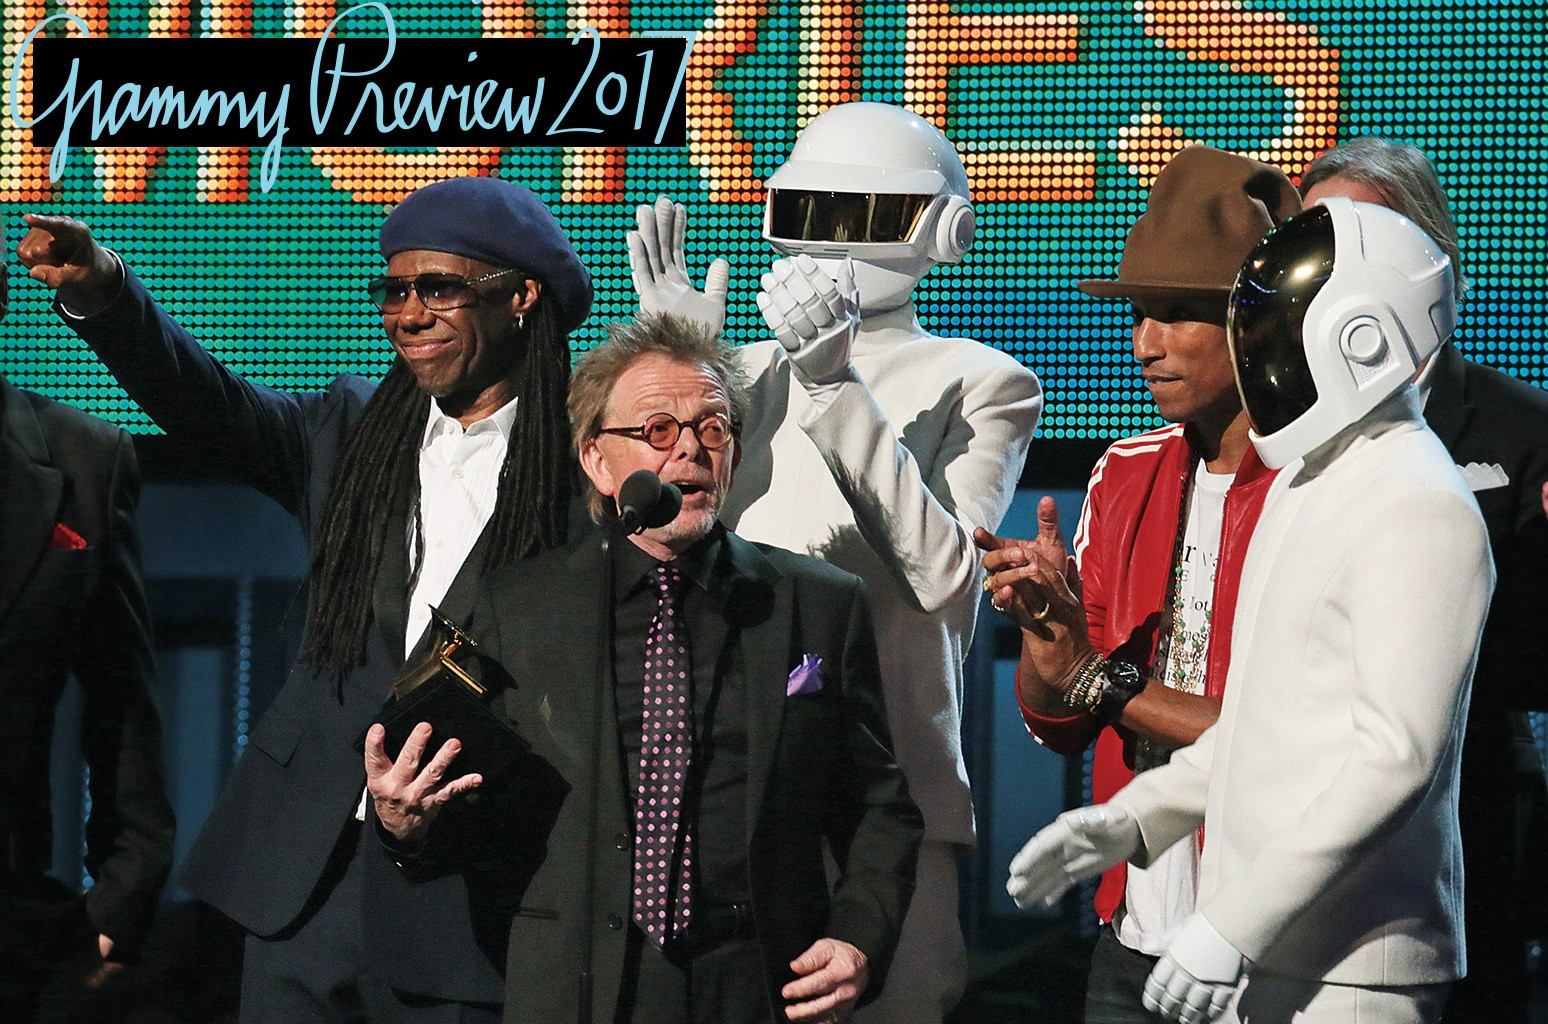 Williams (center) accepted the 2014 album of the year Grammy for Random Access Memories with (from left) Rodgers, Daft Punk and Pharrell Williams.